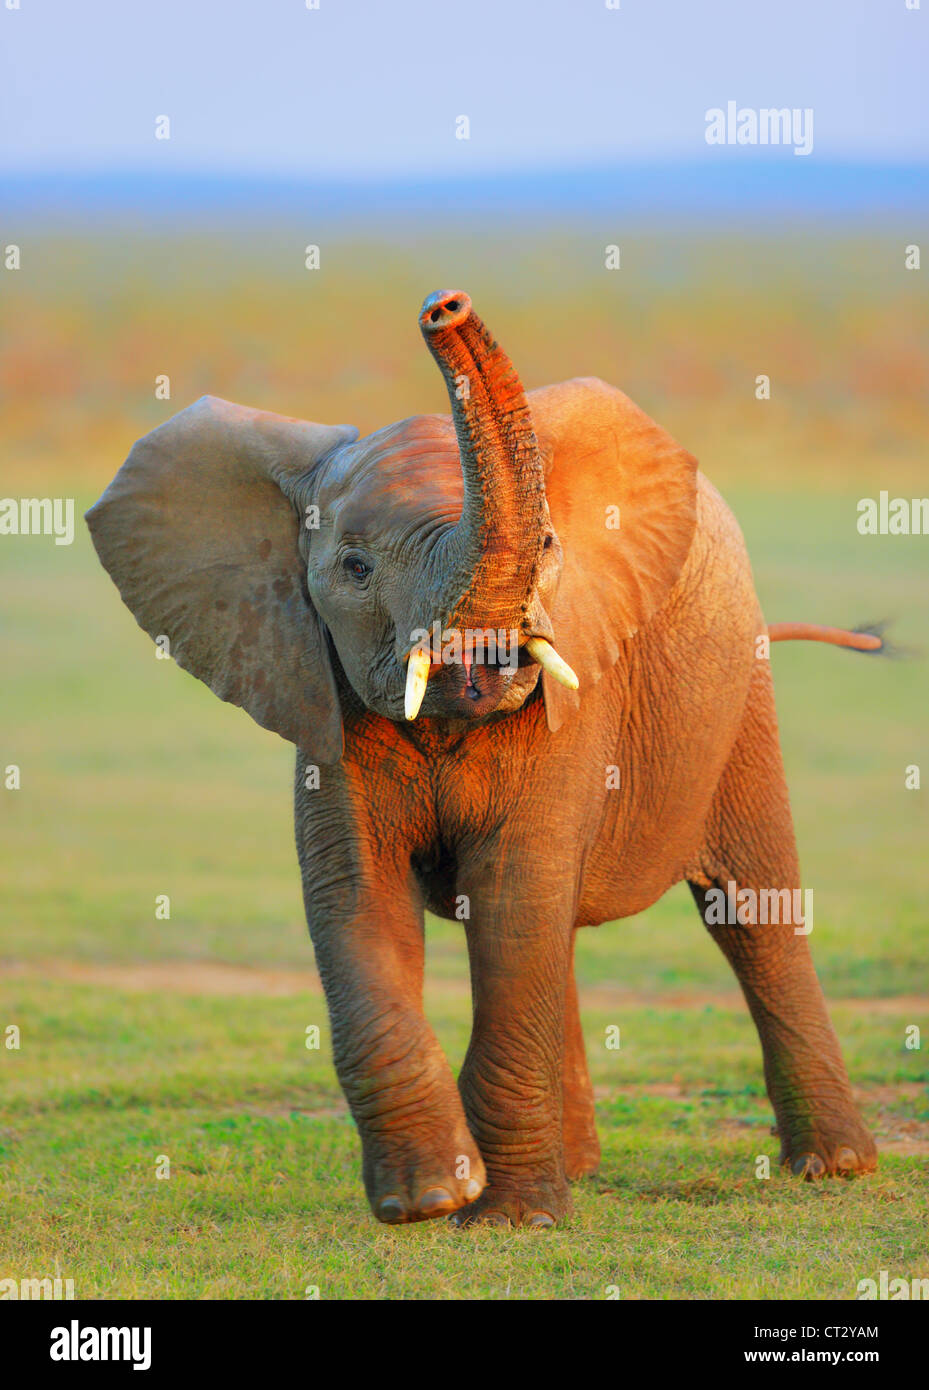 Baby Elephant with trunk raised - Addo Elephant National Park - South Africa - Stock Image